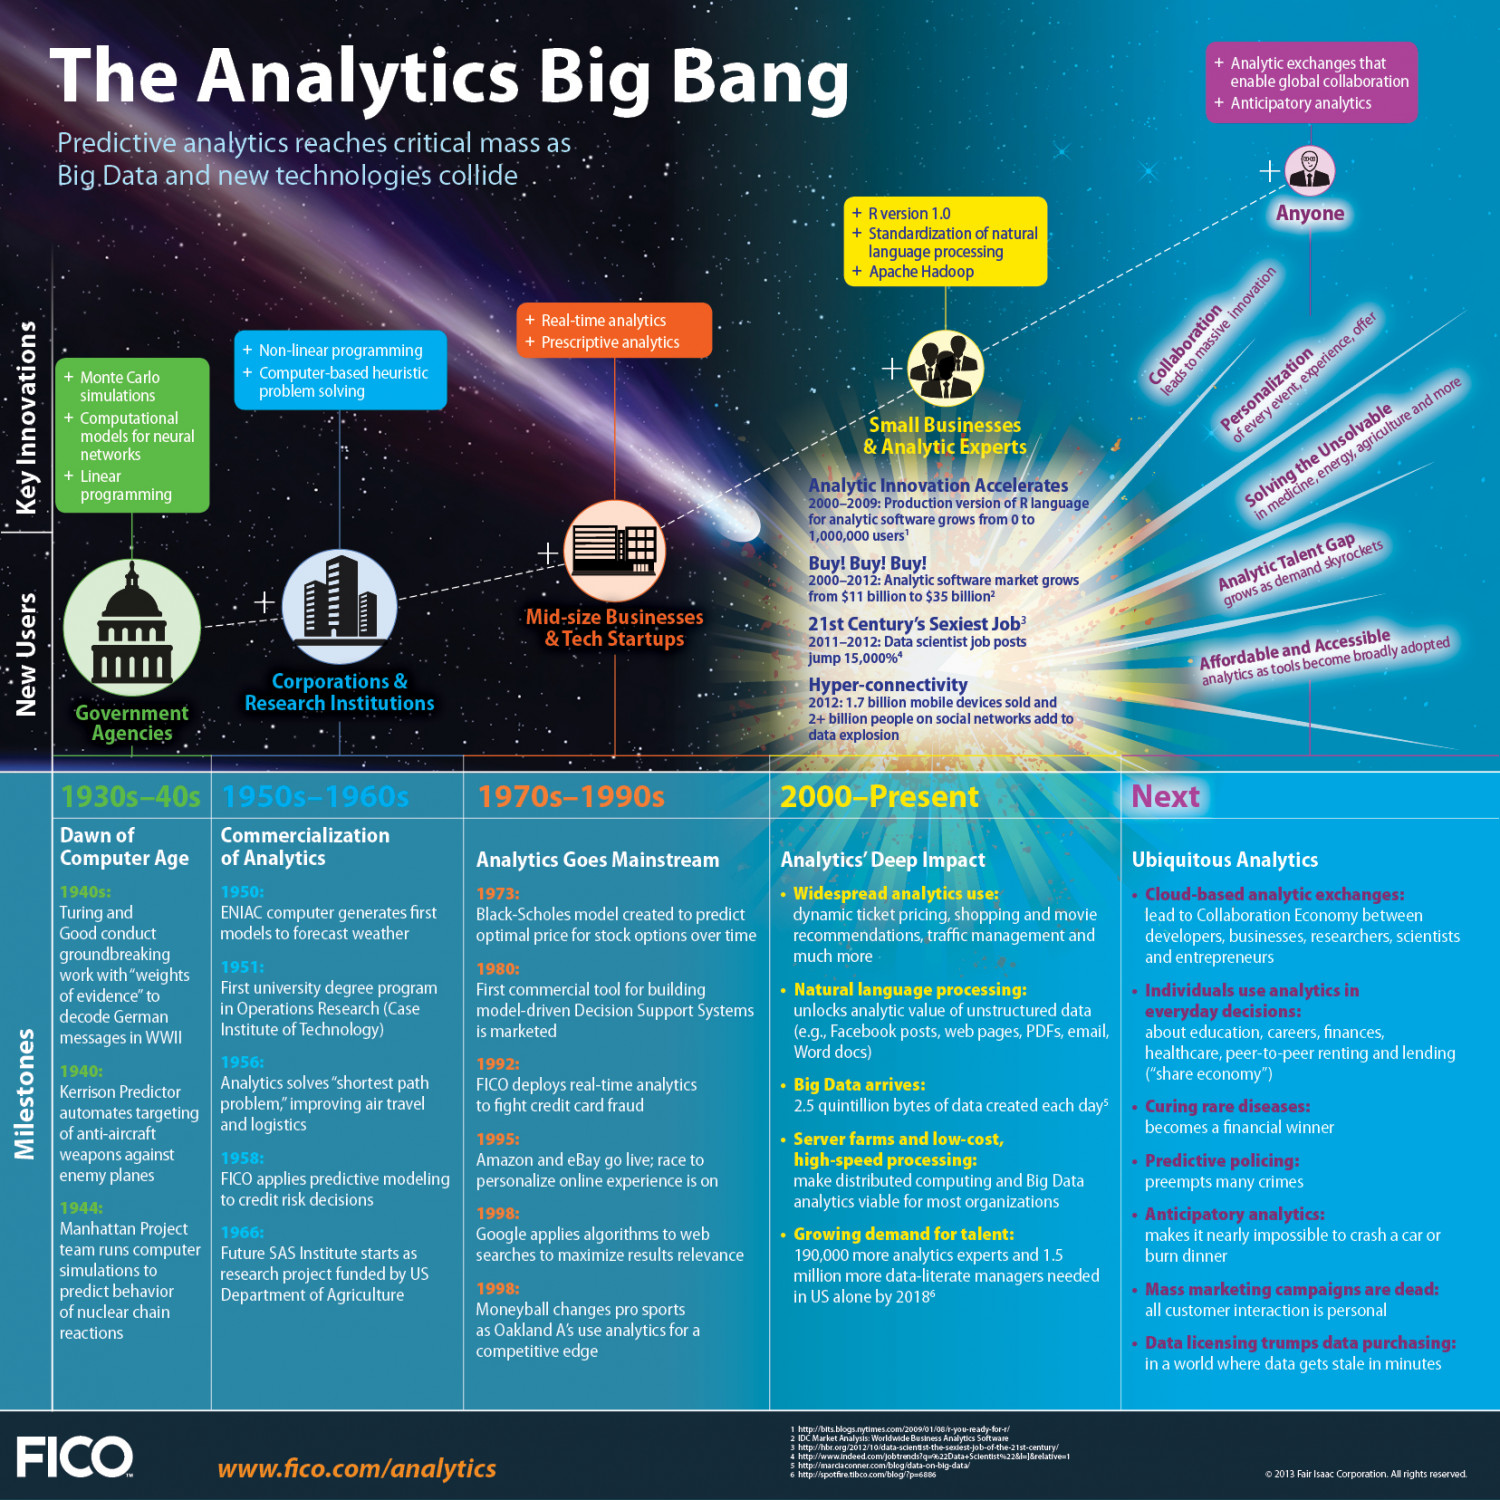 The Analytics Big Bang Infographic